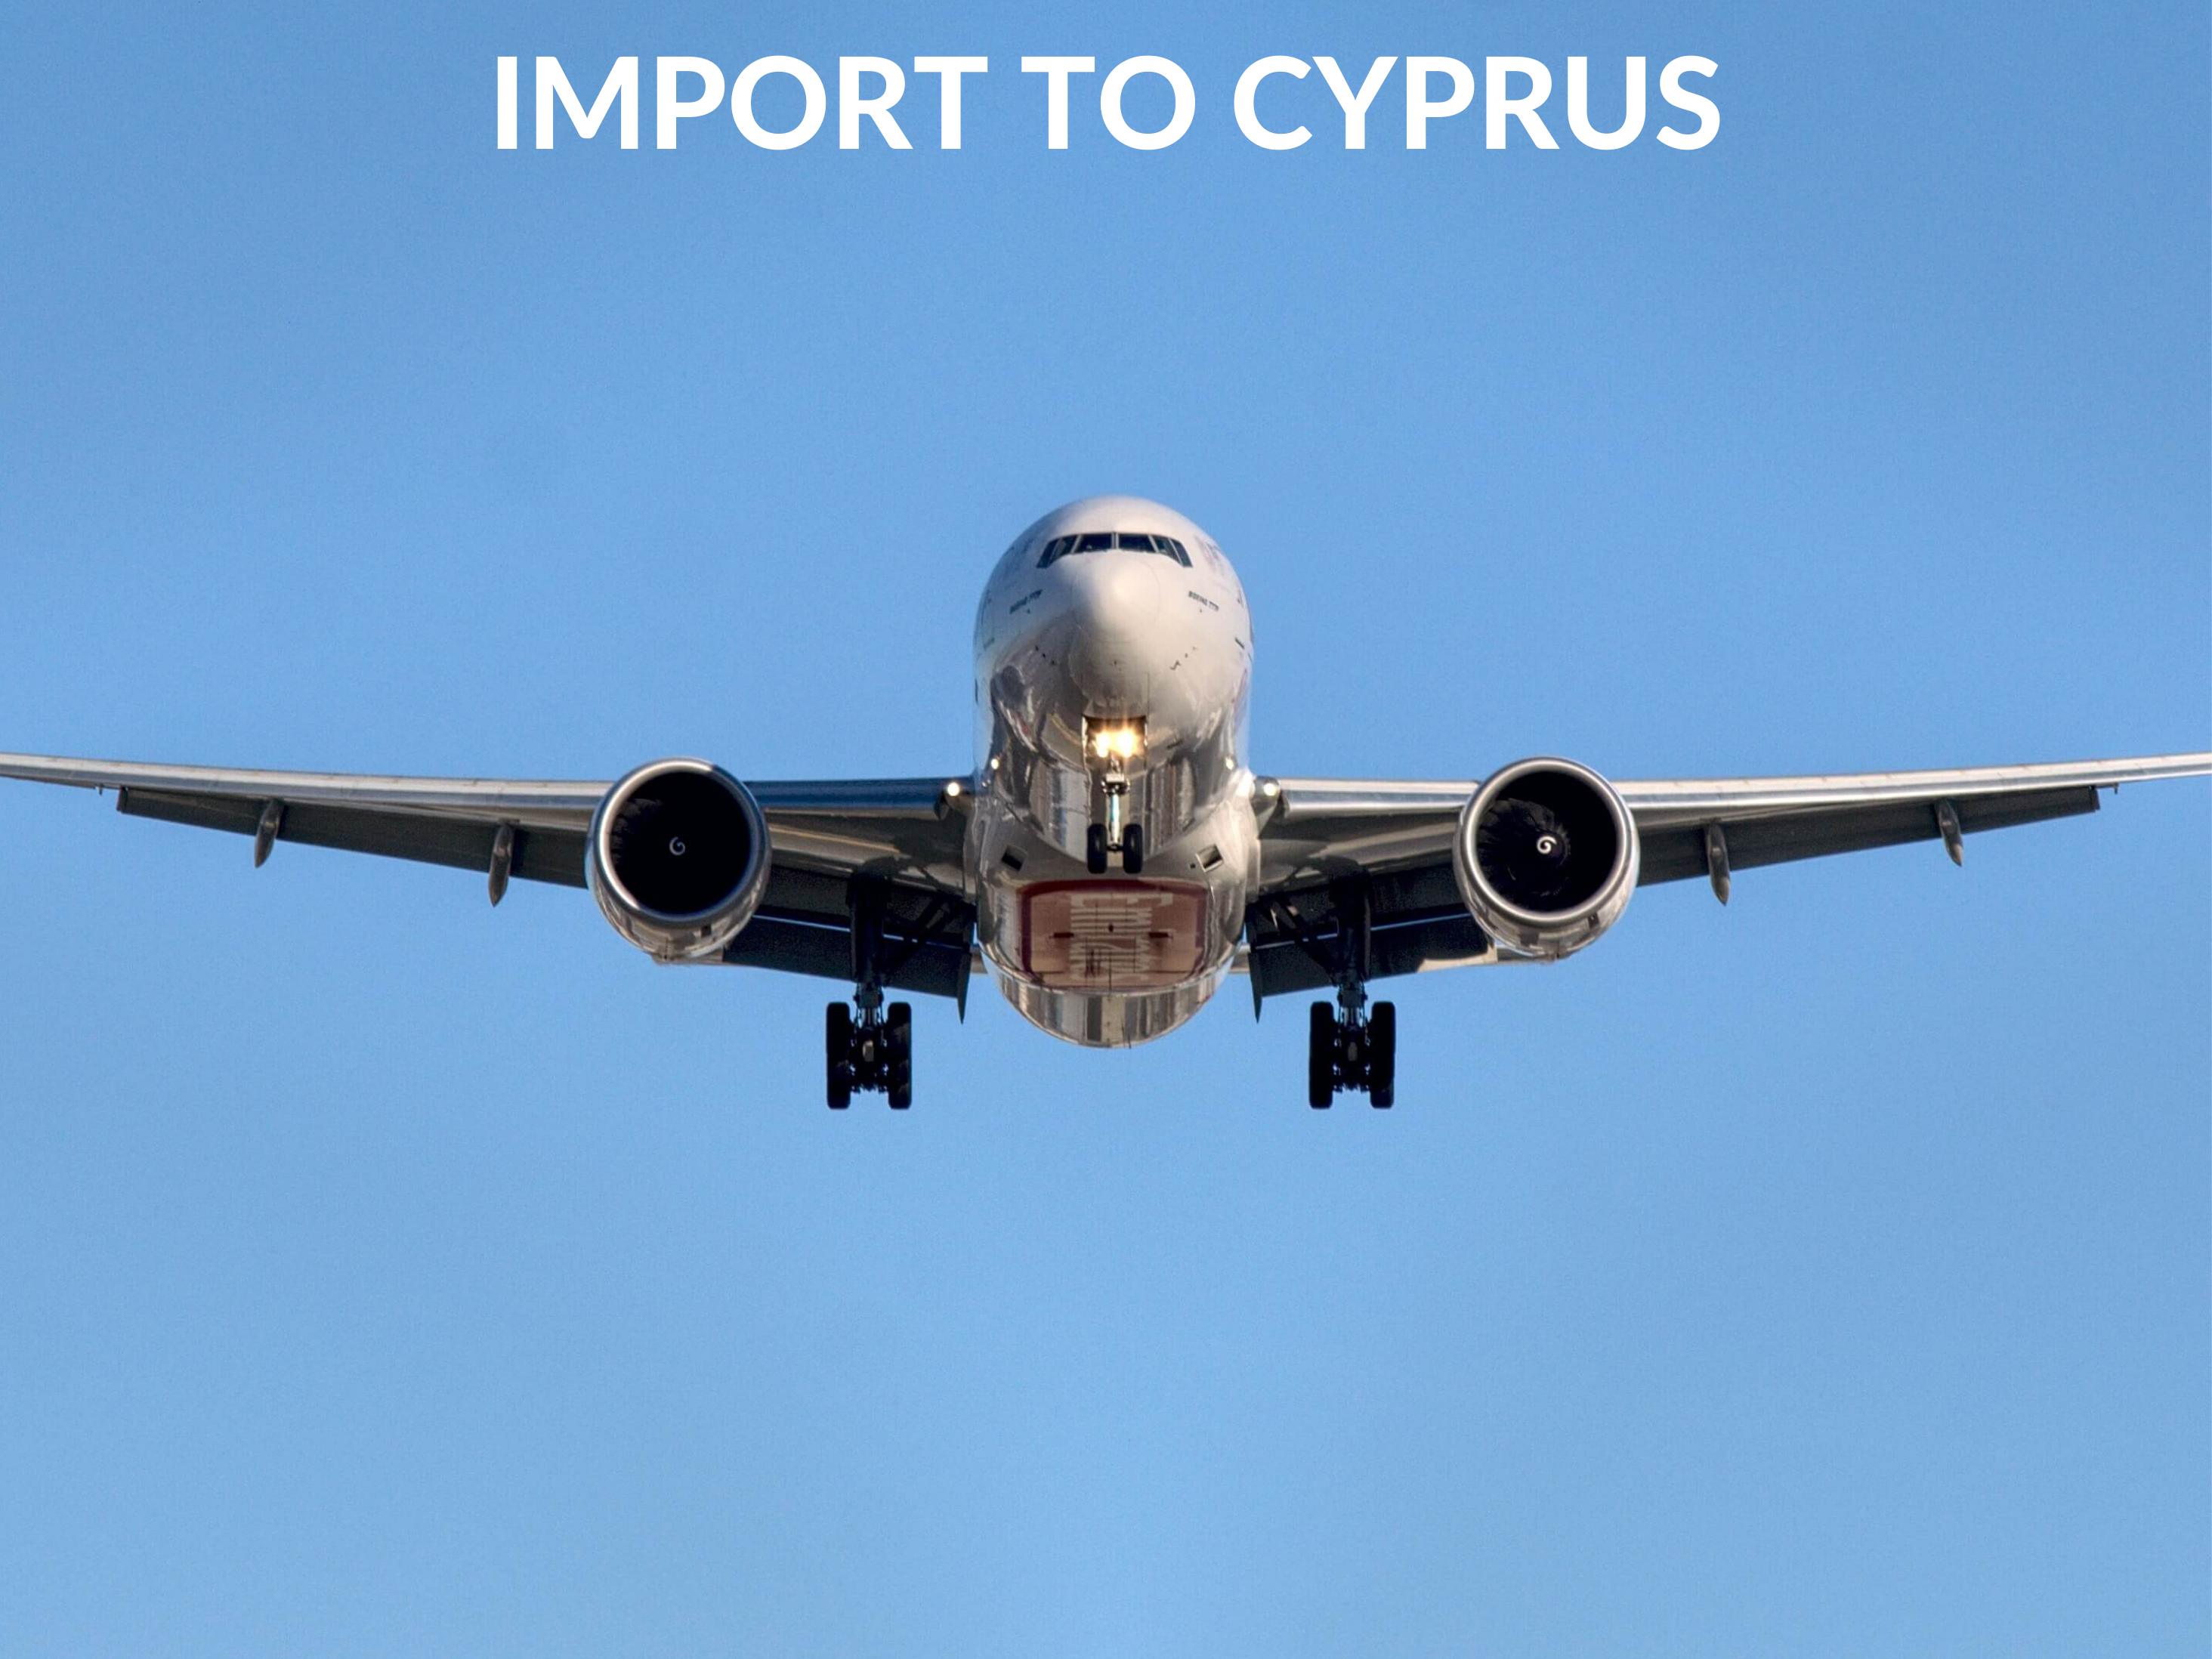 AIR IMPORT RATES TO CYPRUS